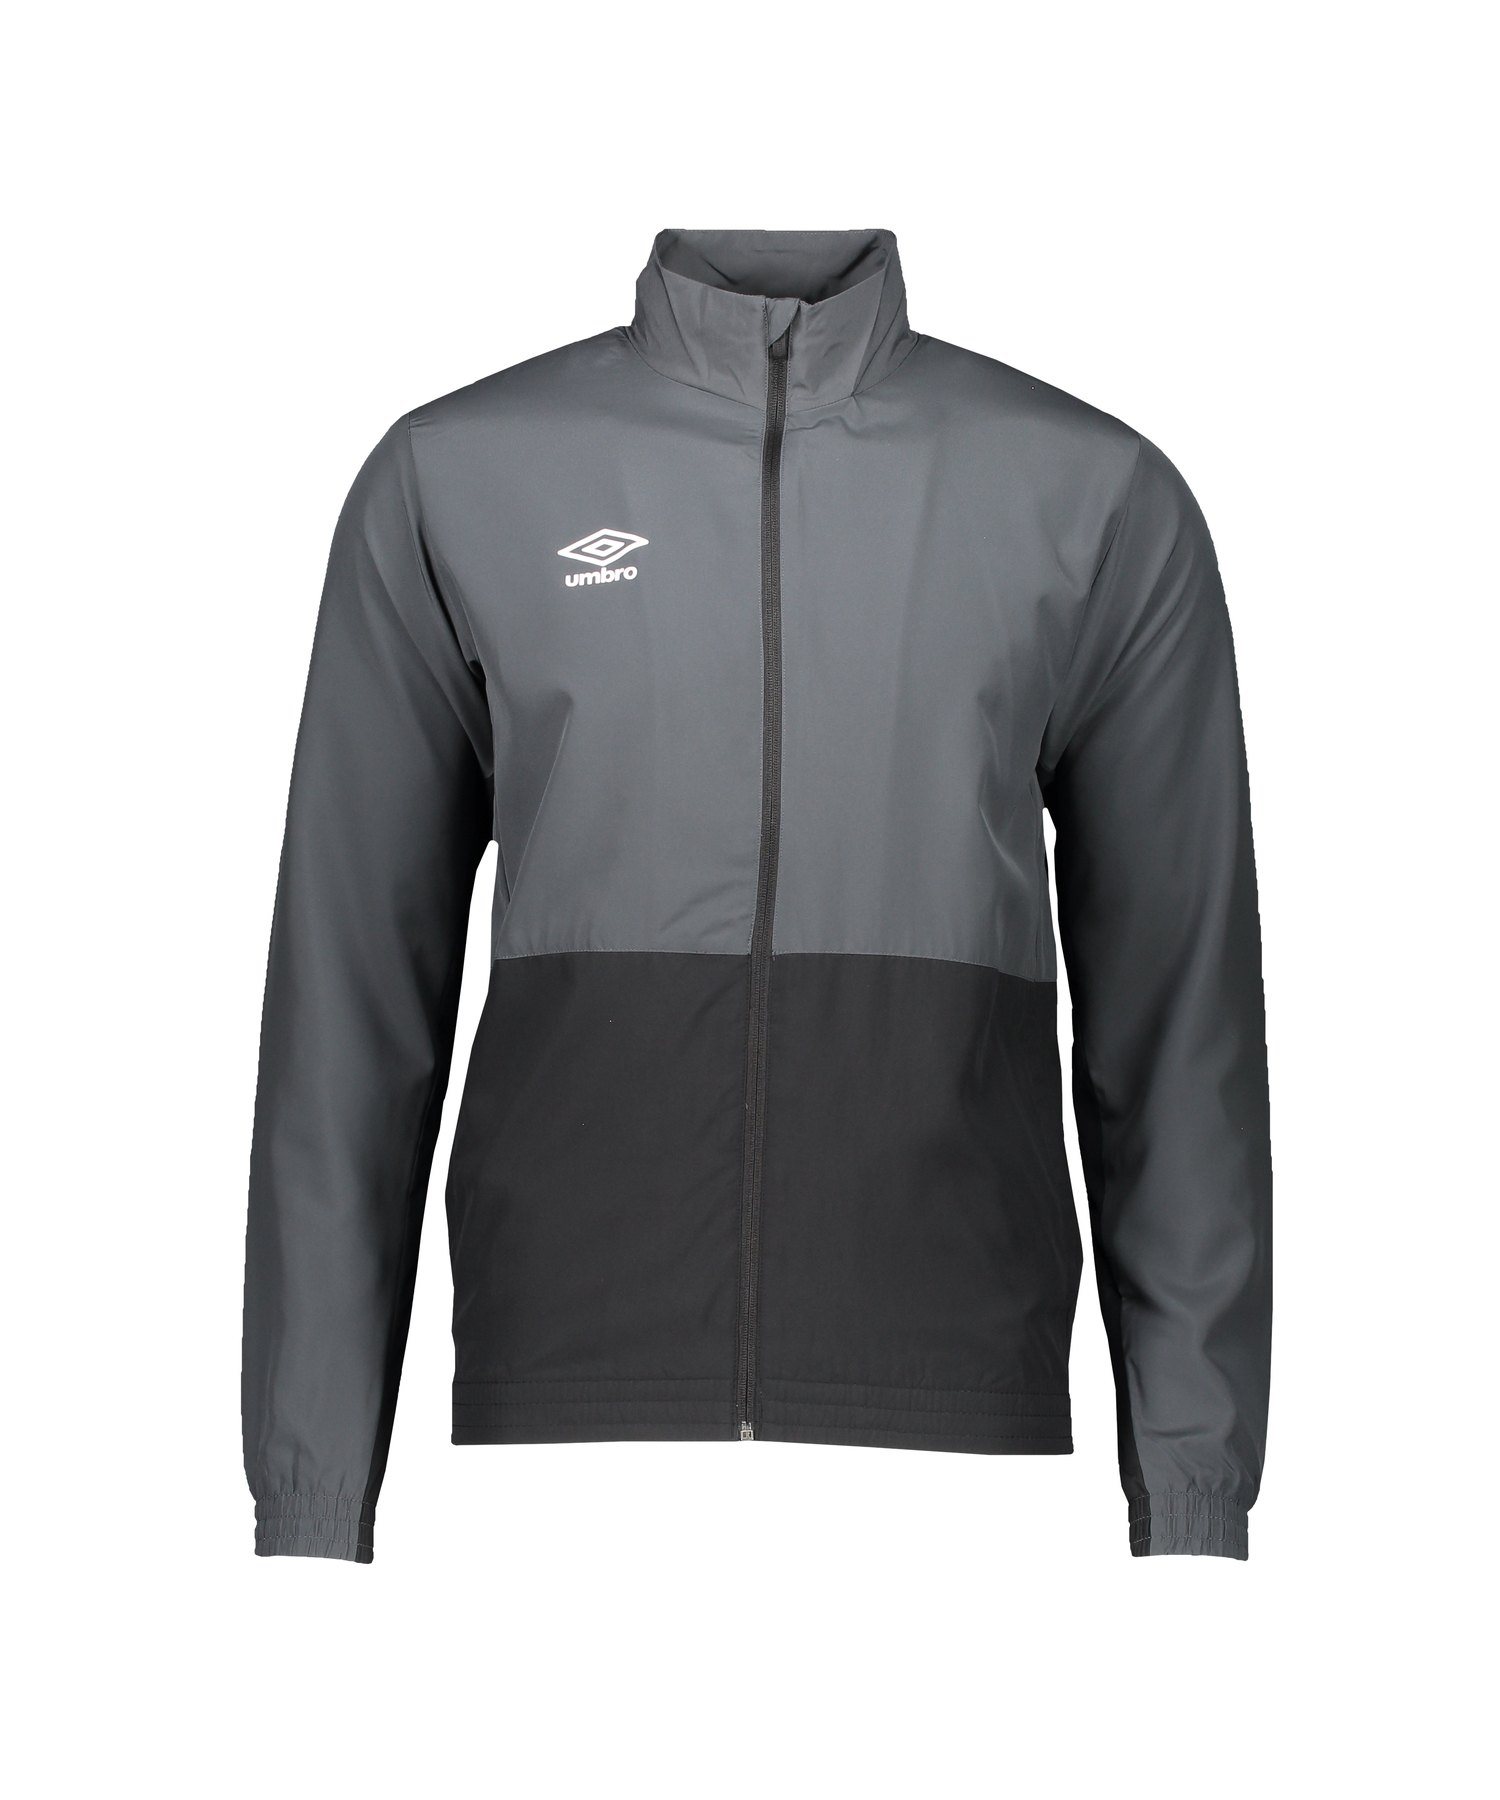 Umbro Training Woven Jacket Jacke Grau FAMV - grau